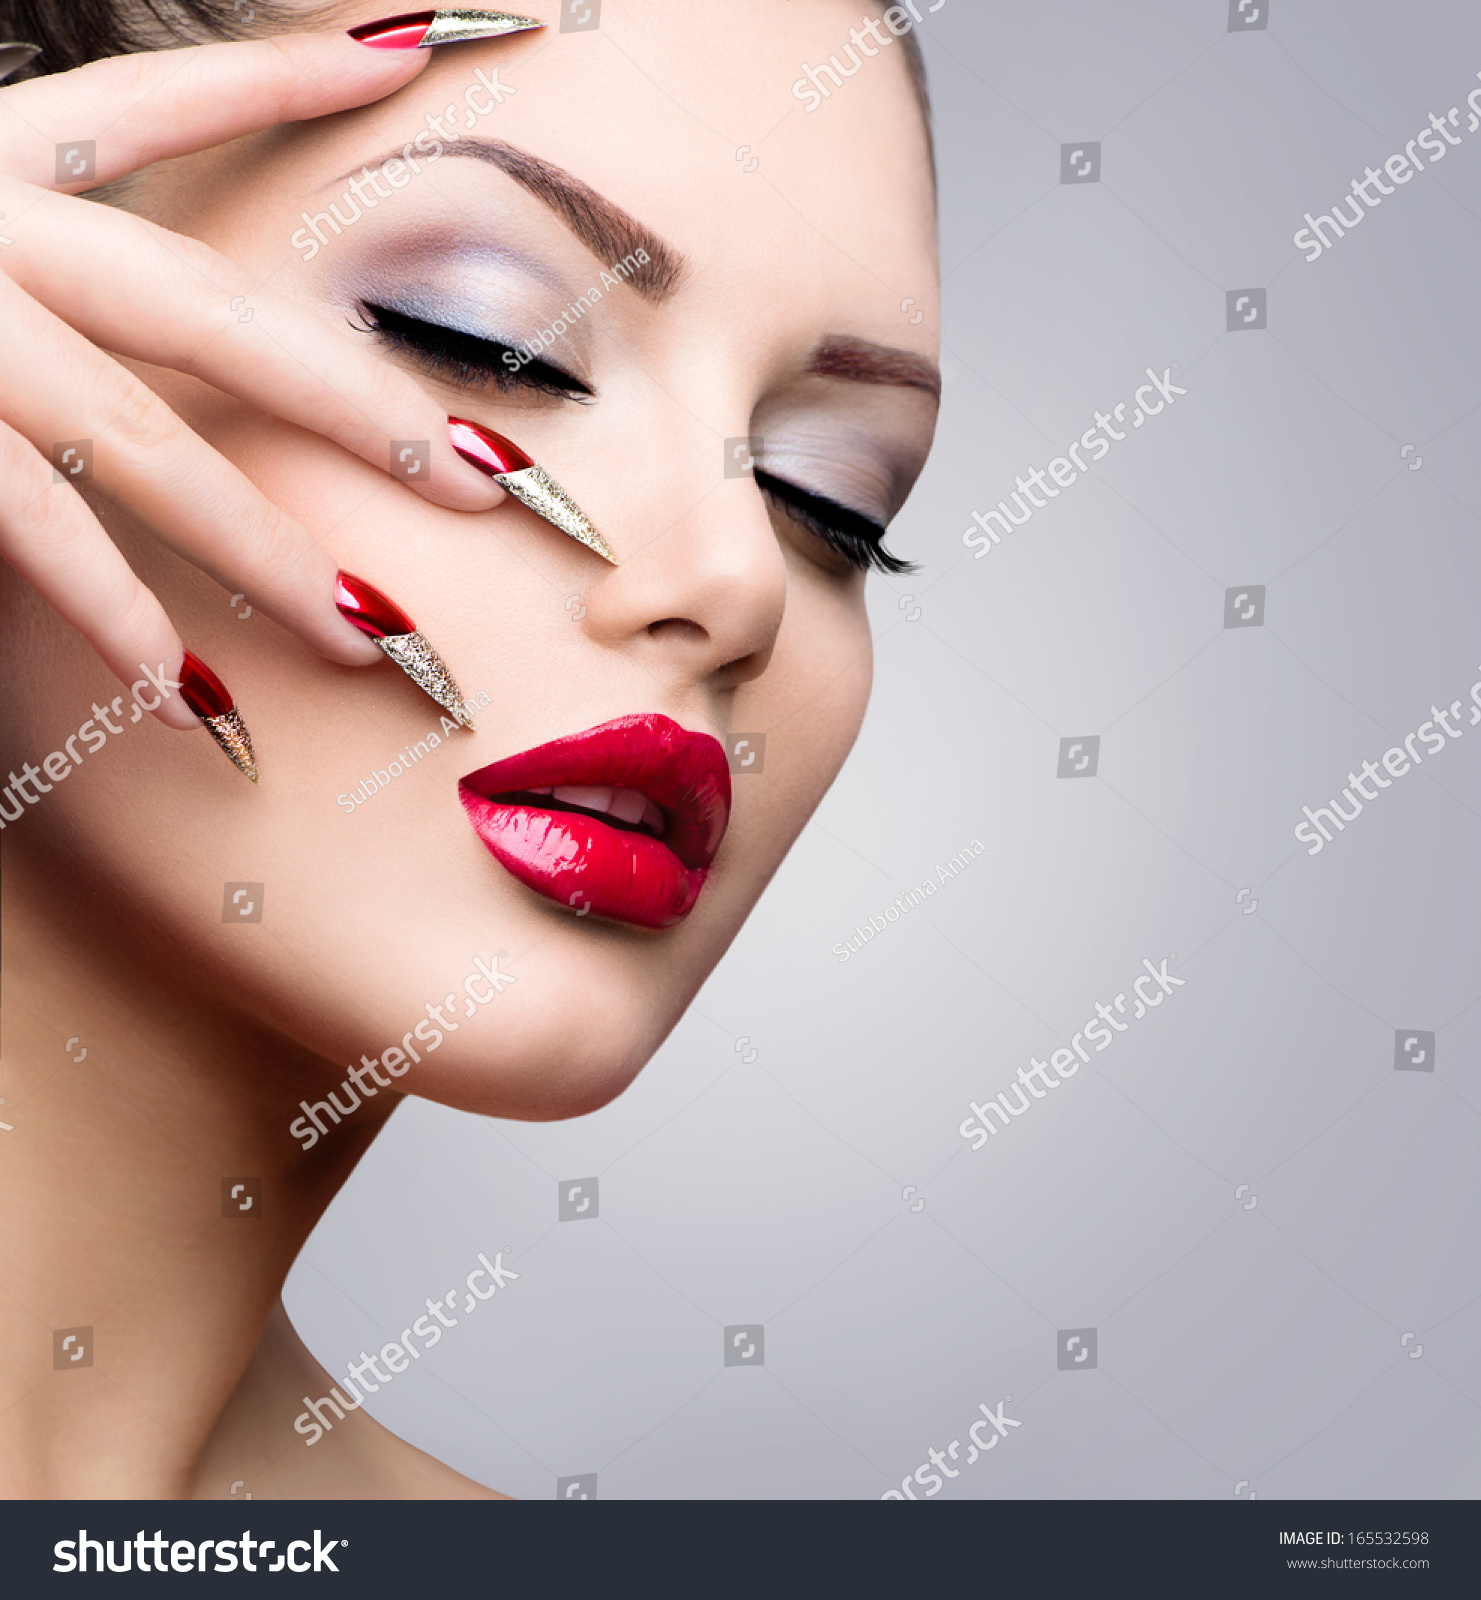 royalty free fashion beauty model girl manicure and 165532598 stock photo. Black Bedroom Furniture Sets. Home Design Ideas